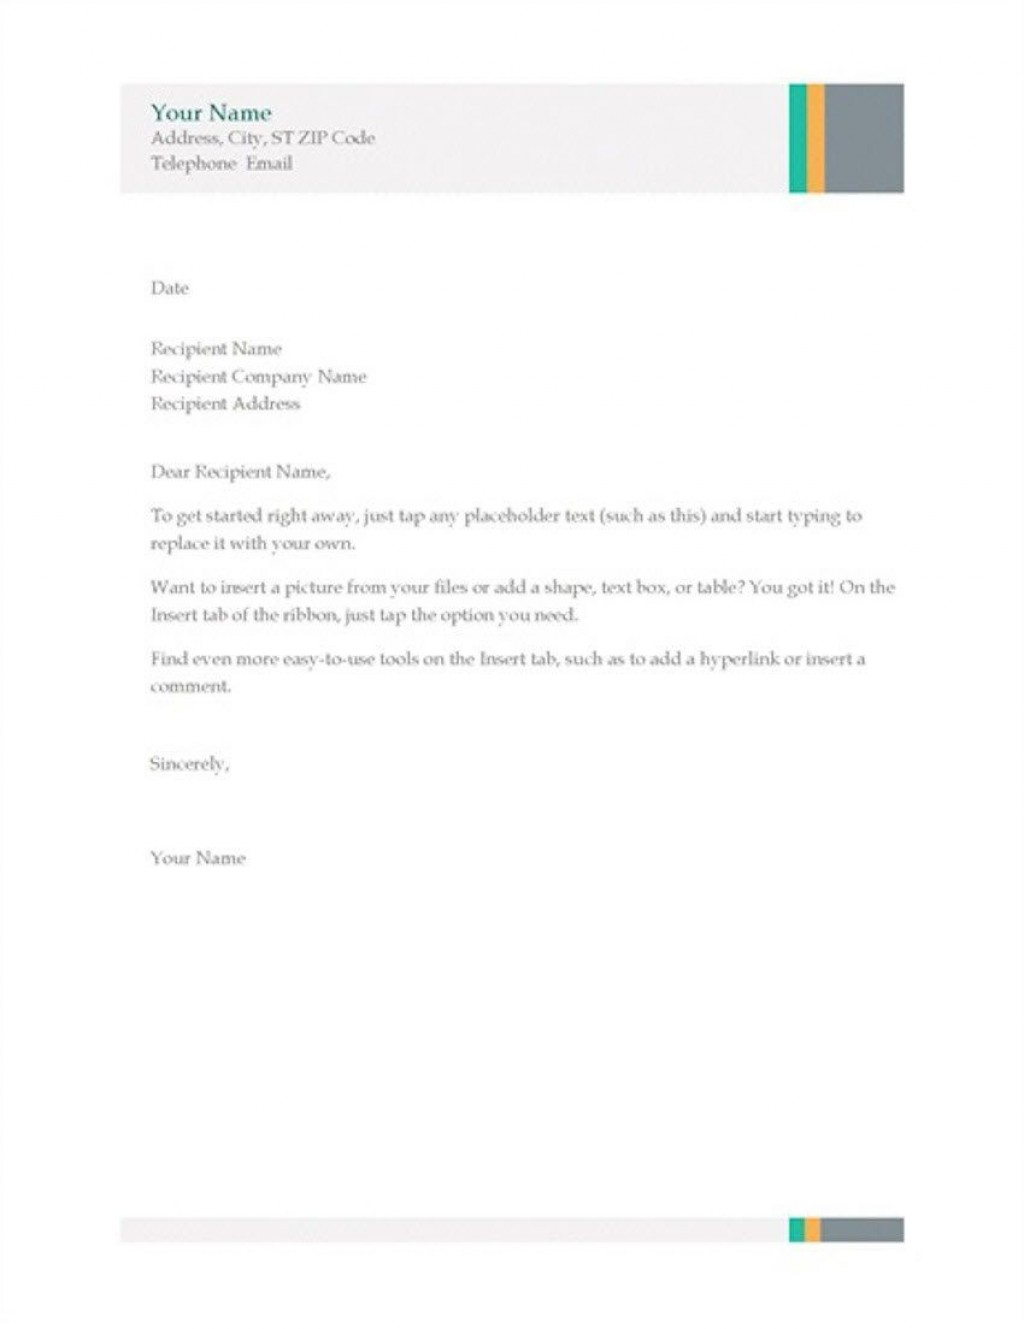 006 Archaicawful Letterhead Example Free Download High Definition  Advocate Format Hospital In Word PdfLarge